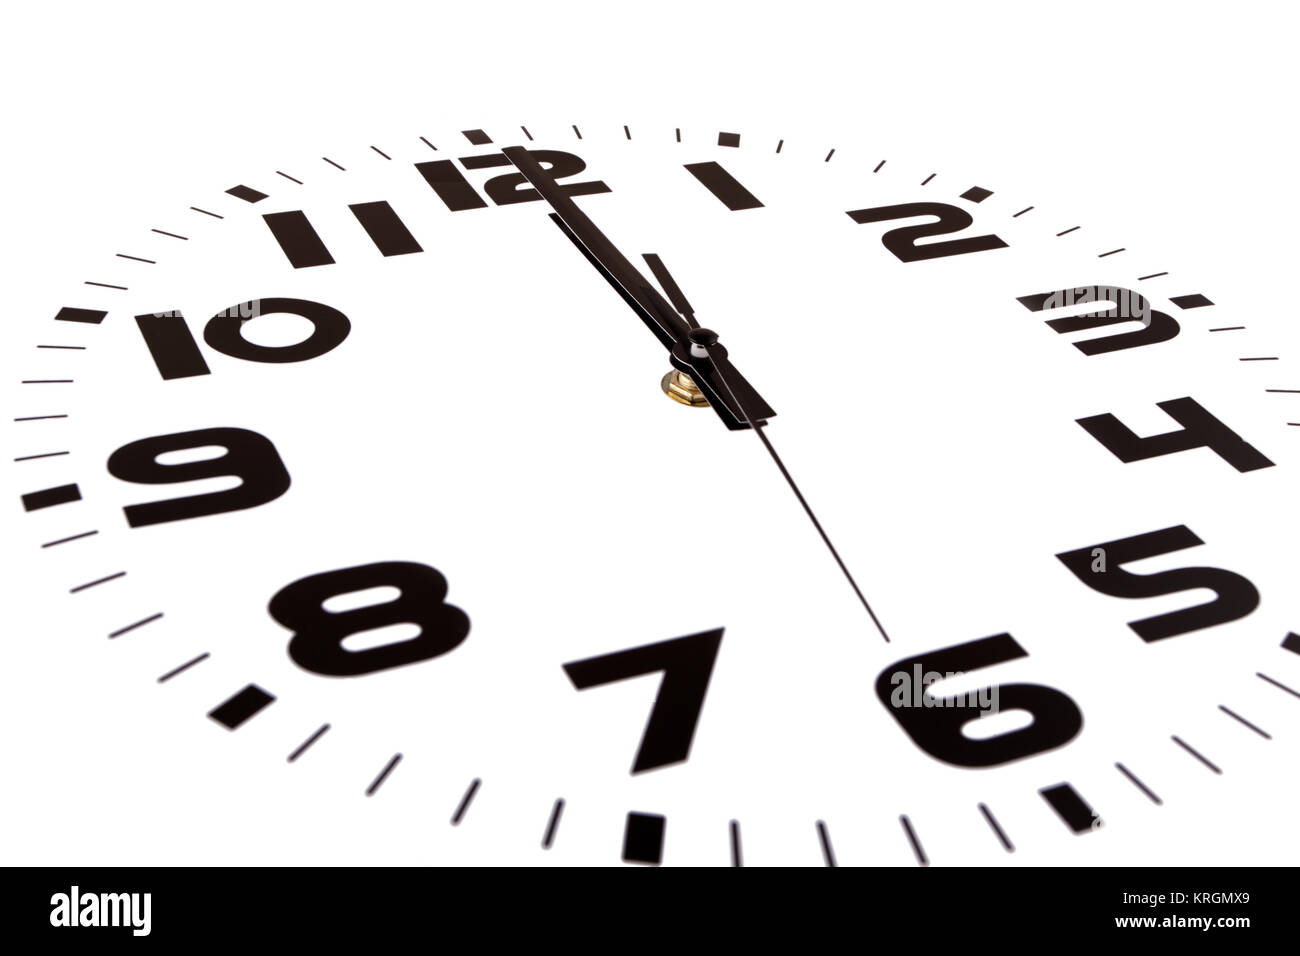 Clock isolated on white marking the twelve o'clock hour. The main focus is in the hour hand. - Stock Image